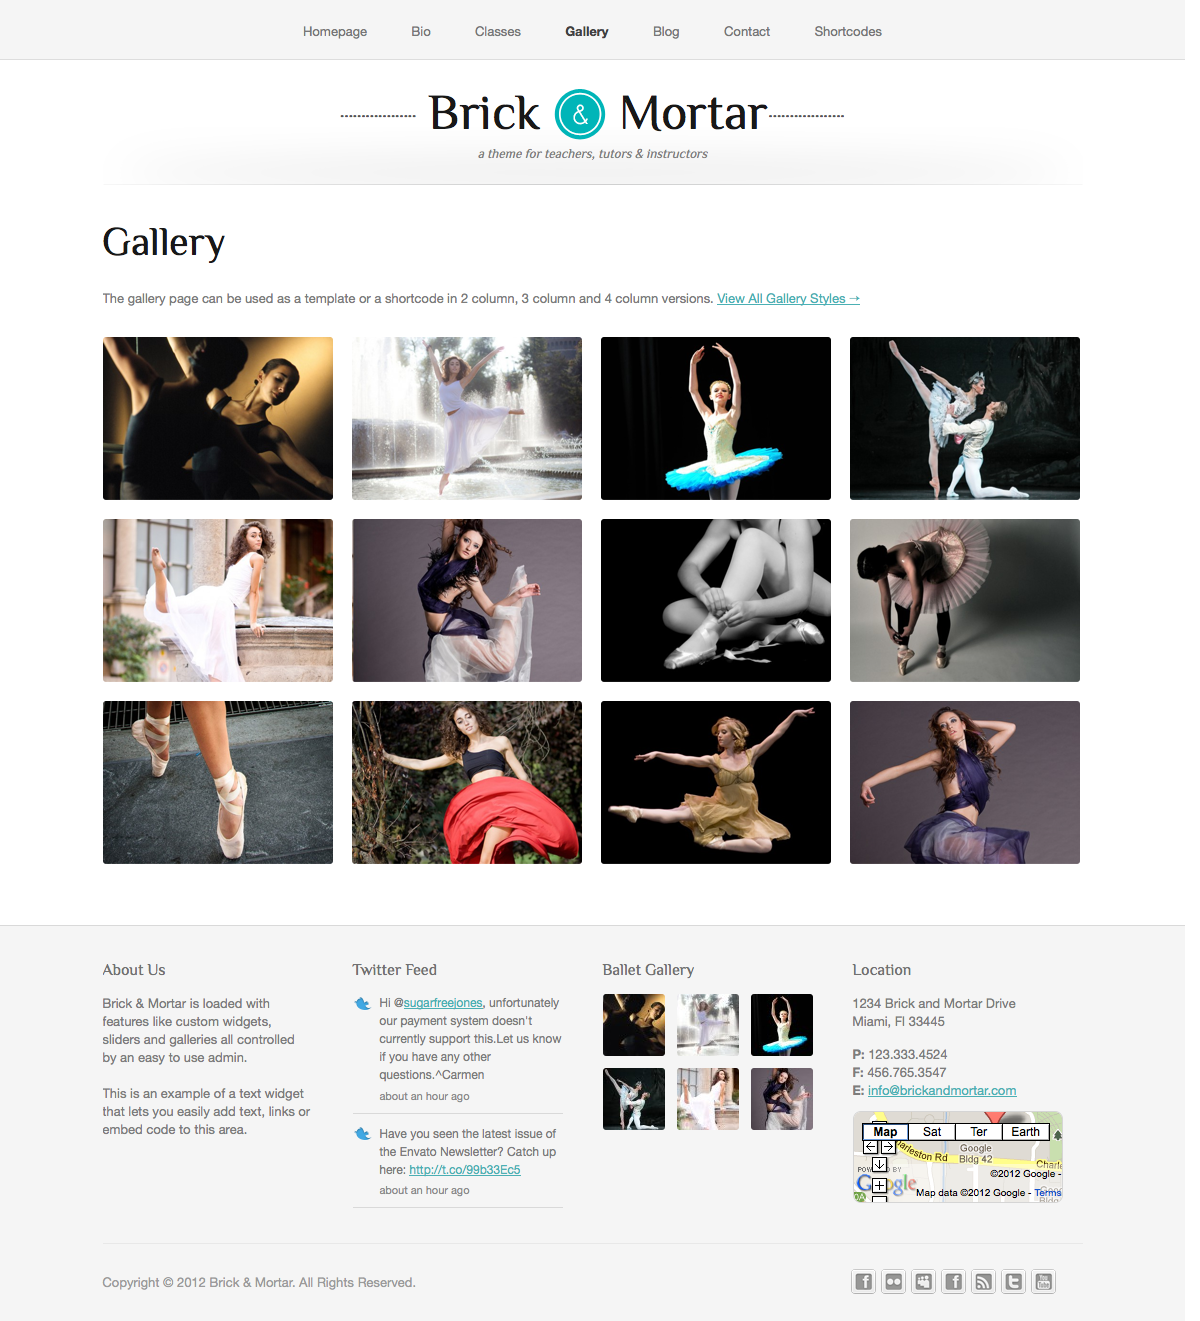 Brick & Mortar - A Personal Business Theme - Gallery - The gallery comes in 3 different layouts - 2, 3 or 4 columns. You can add images or videos that open in a lightbox or on their own description page.